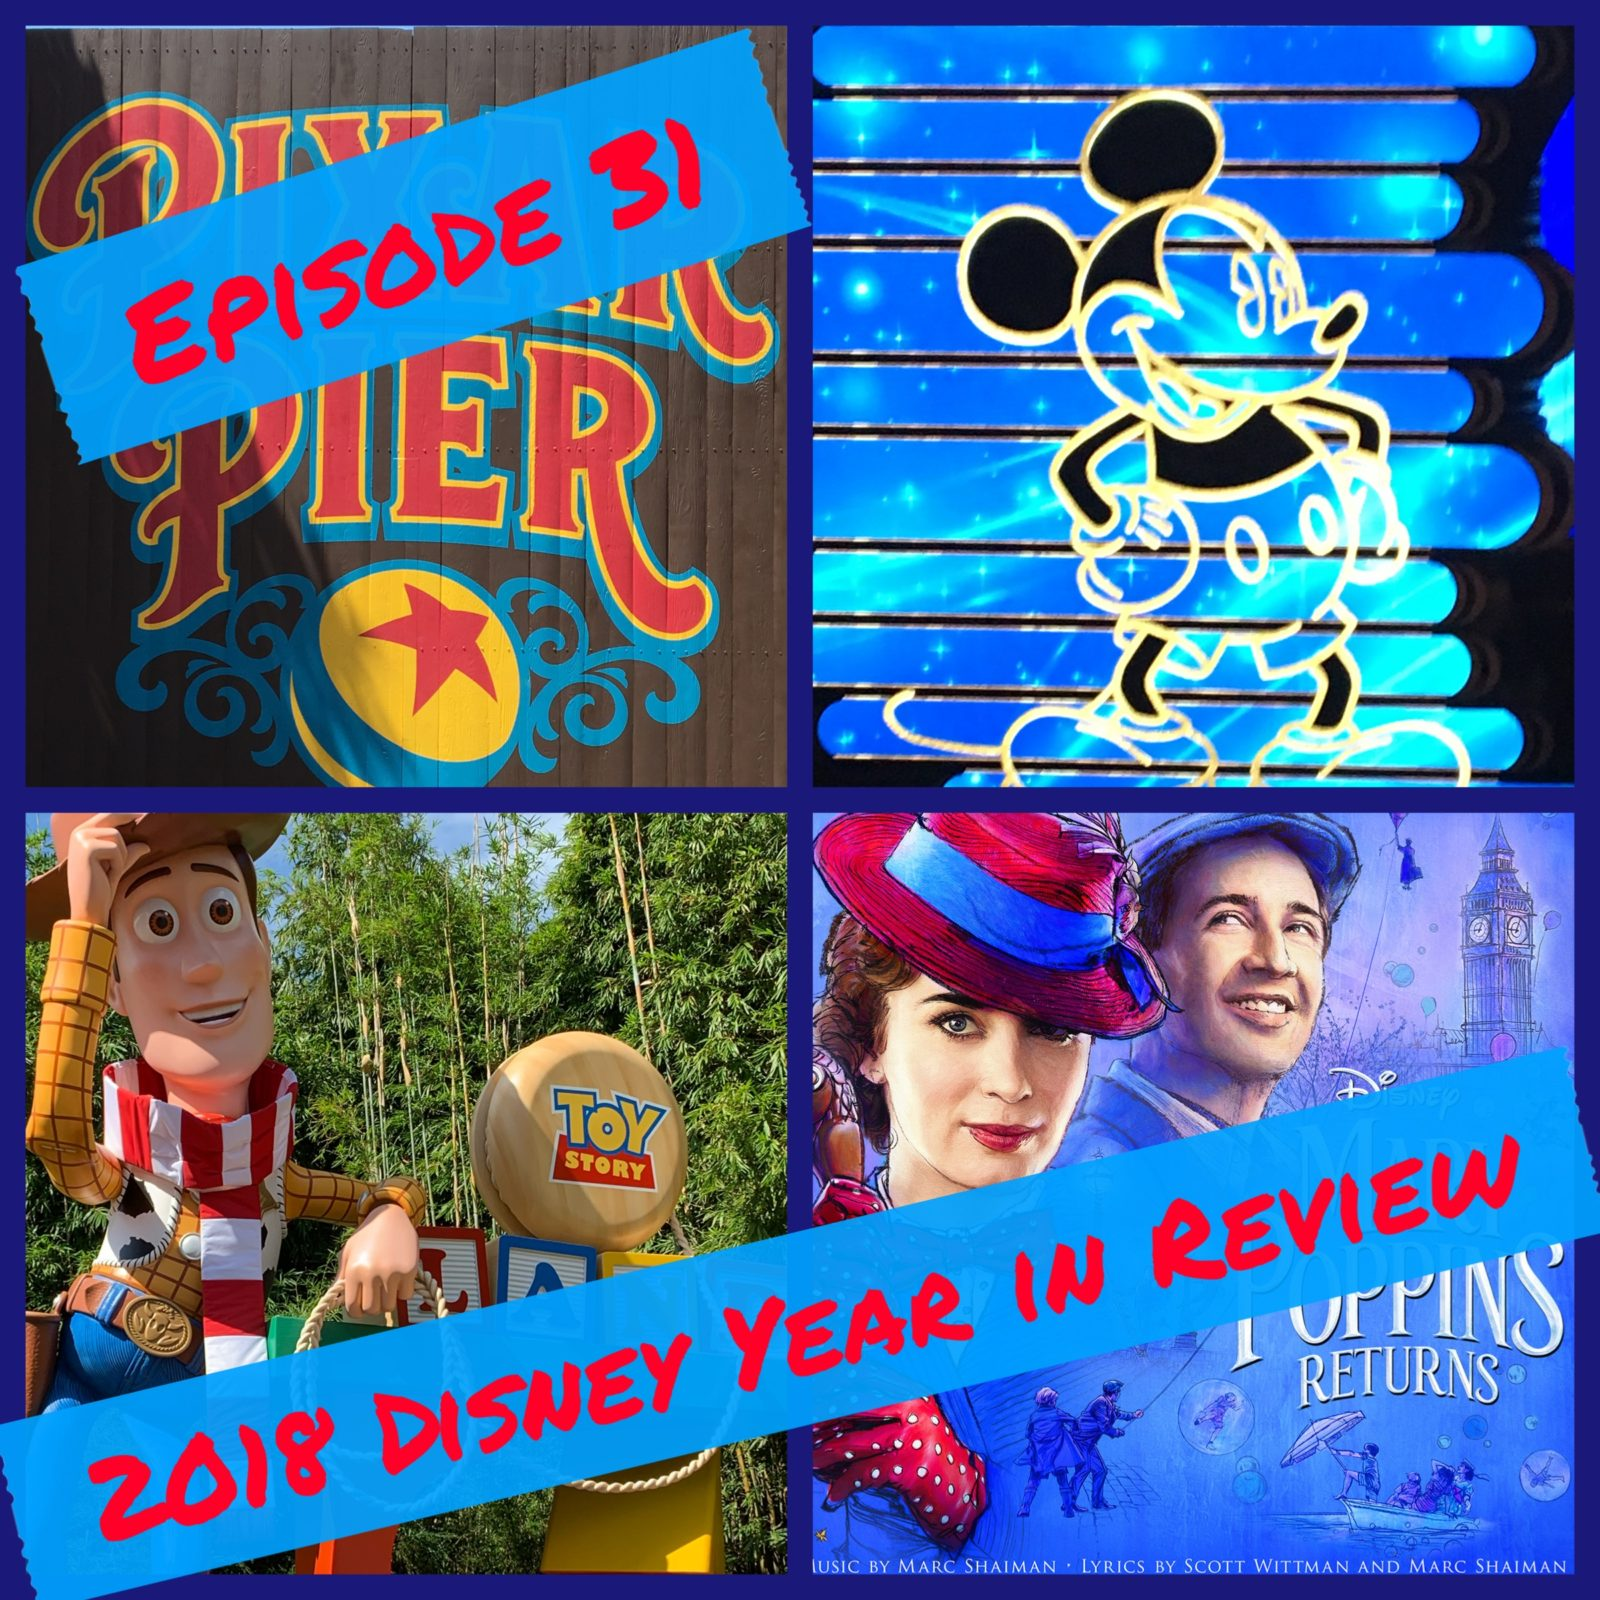 2018 Disney Year In Review